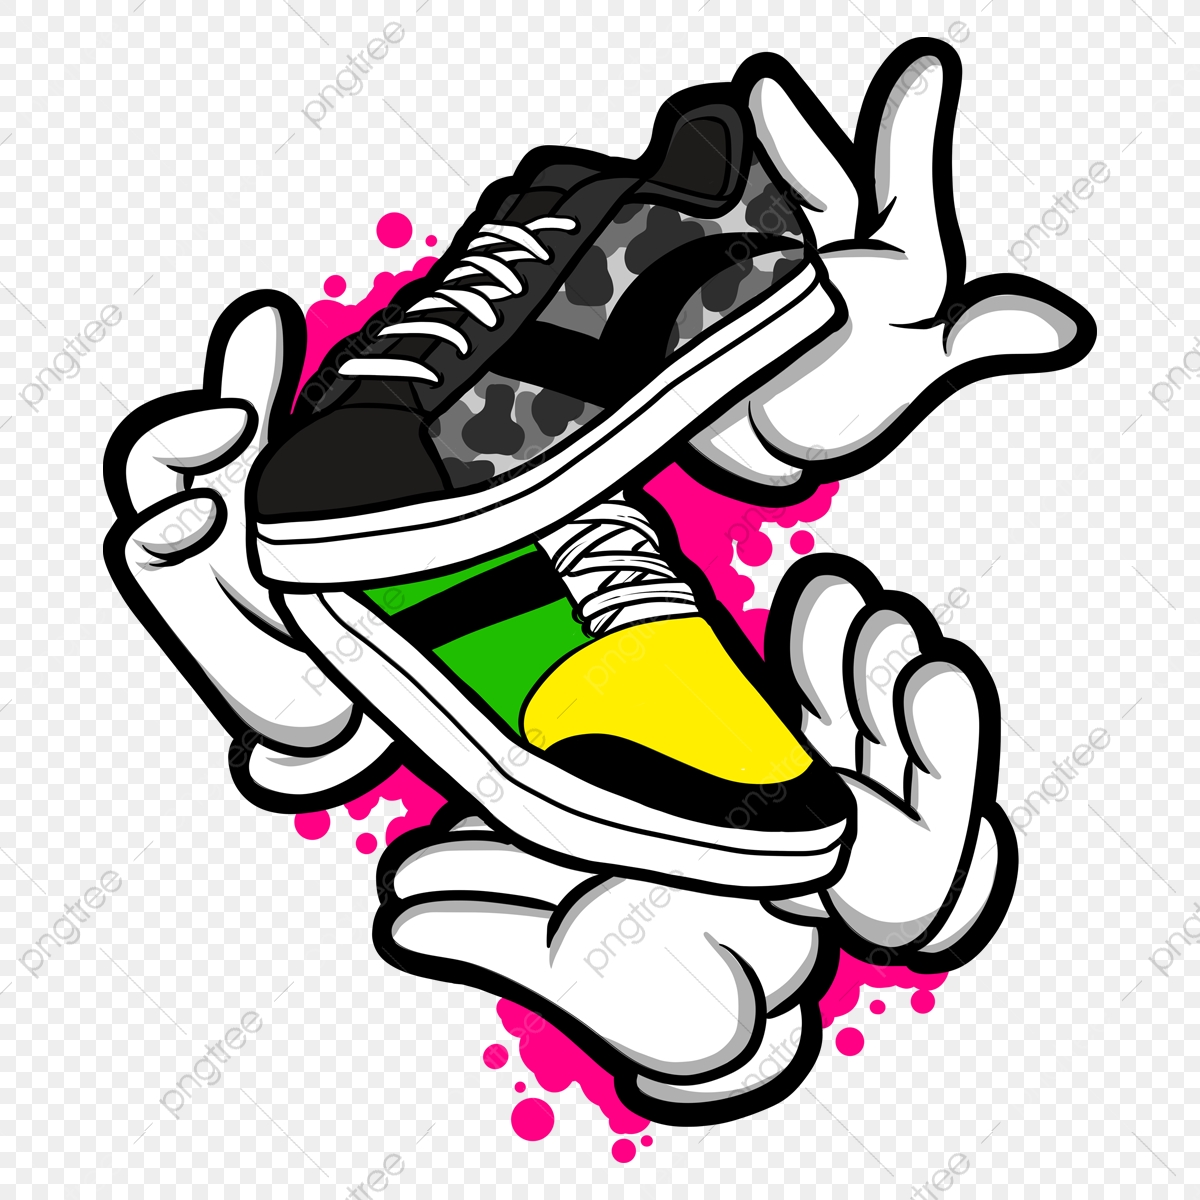 Sneakers Png, Vector, PSD, And Clipart With Transparent